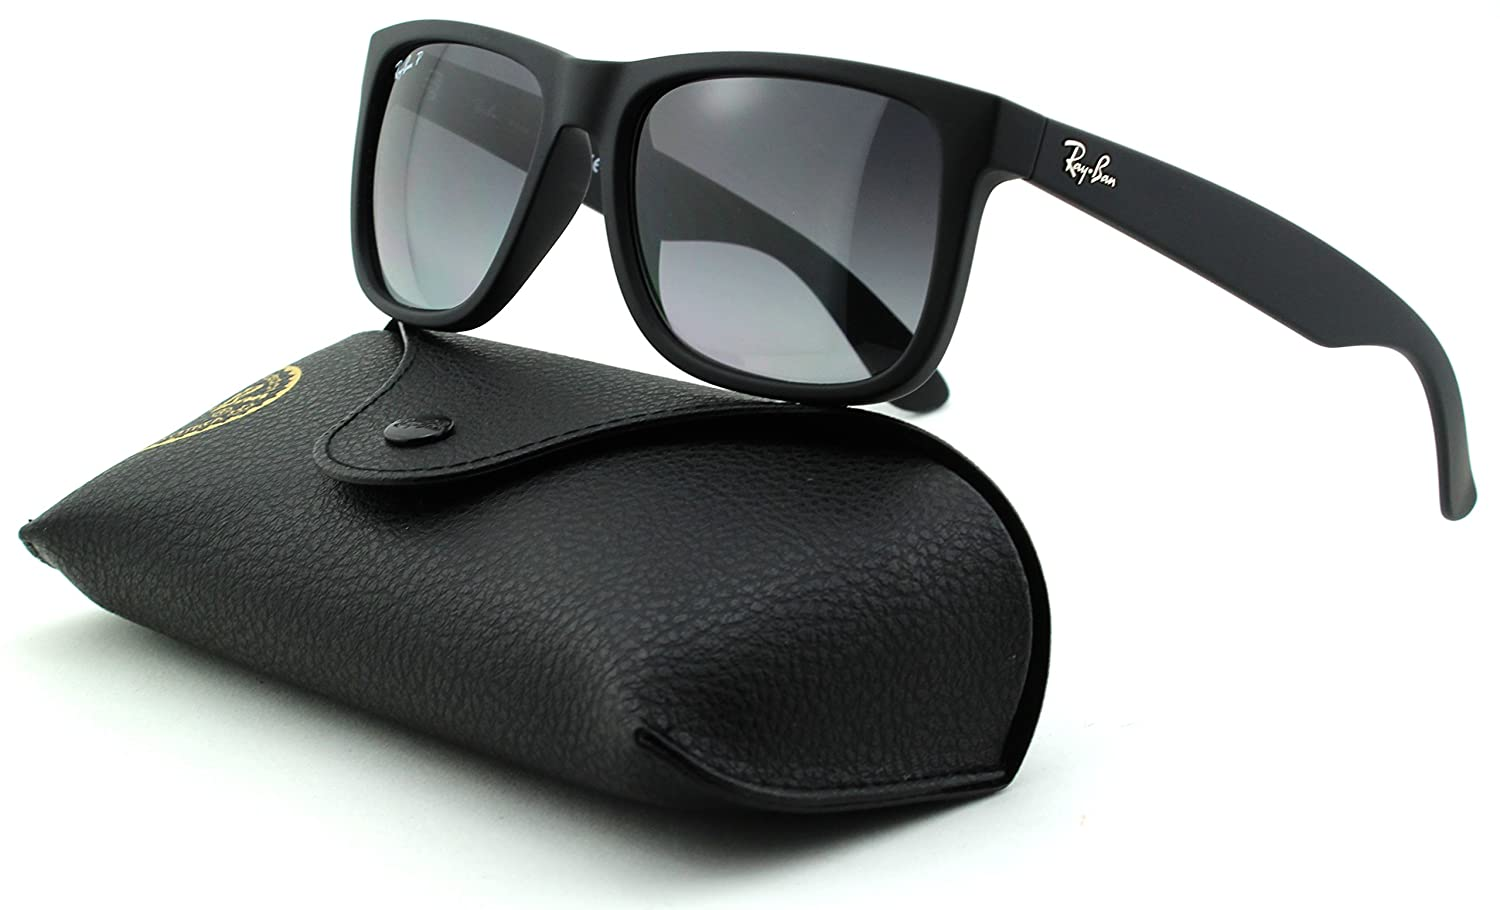 230c0f6a95 Amazon.com  Ray-Ban RB4165 Justin Unisex Rectangular Sunglasses (Black  Rubber Frame Polarized Grey Gradient Lens 622 T3